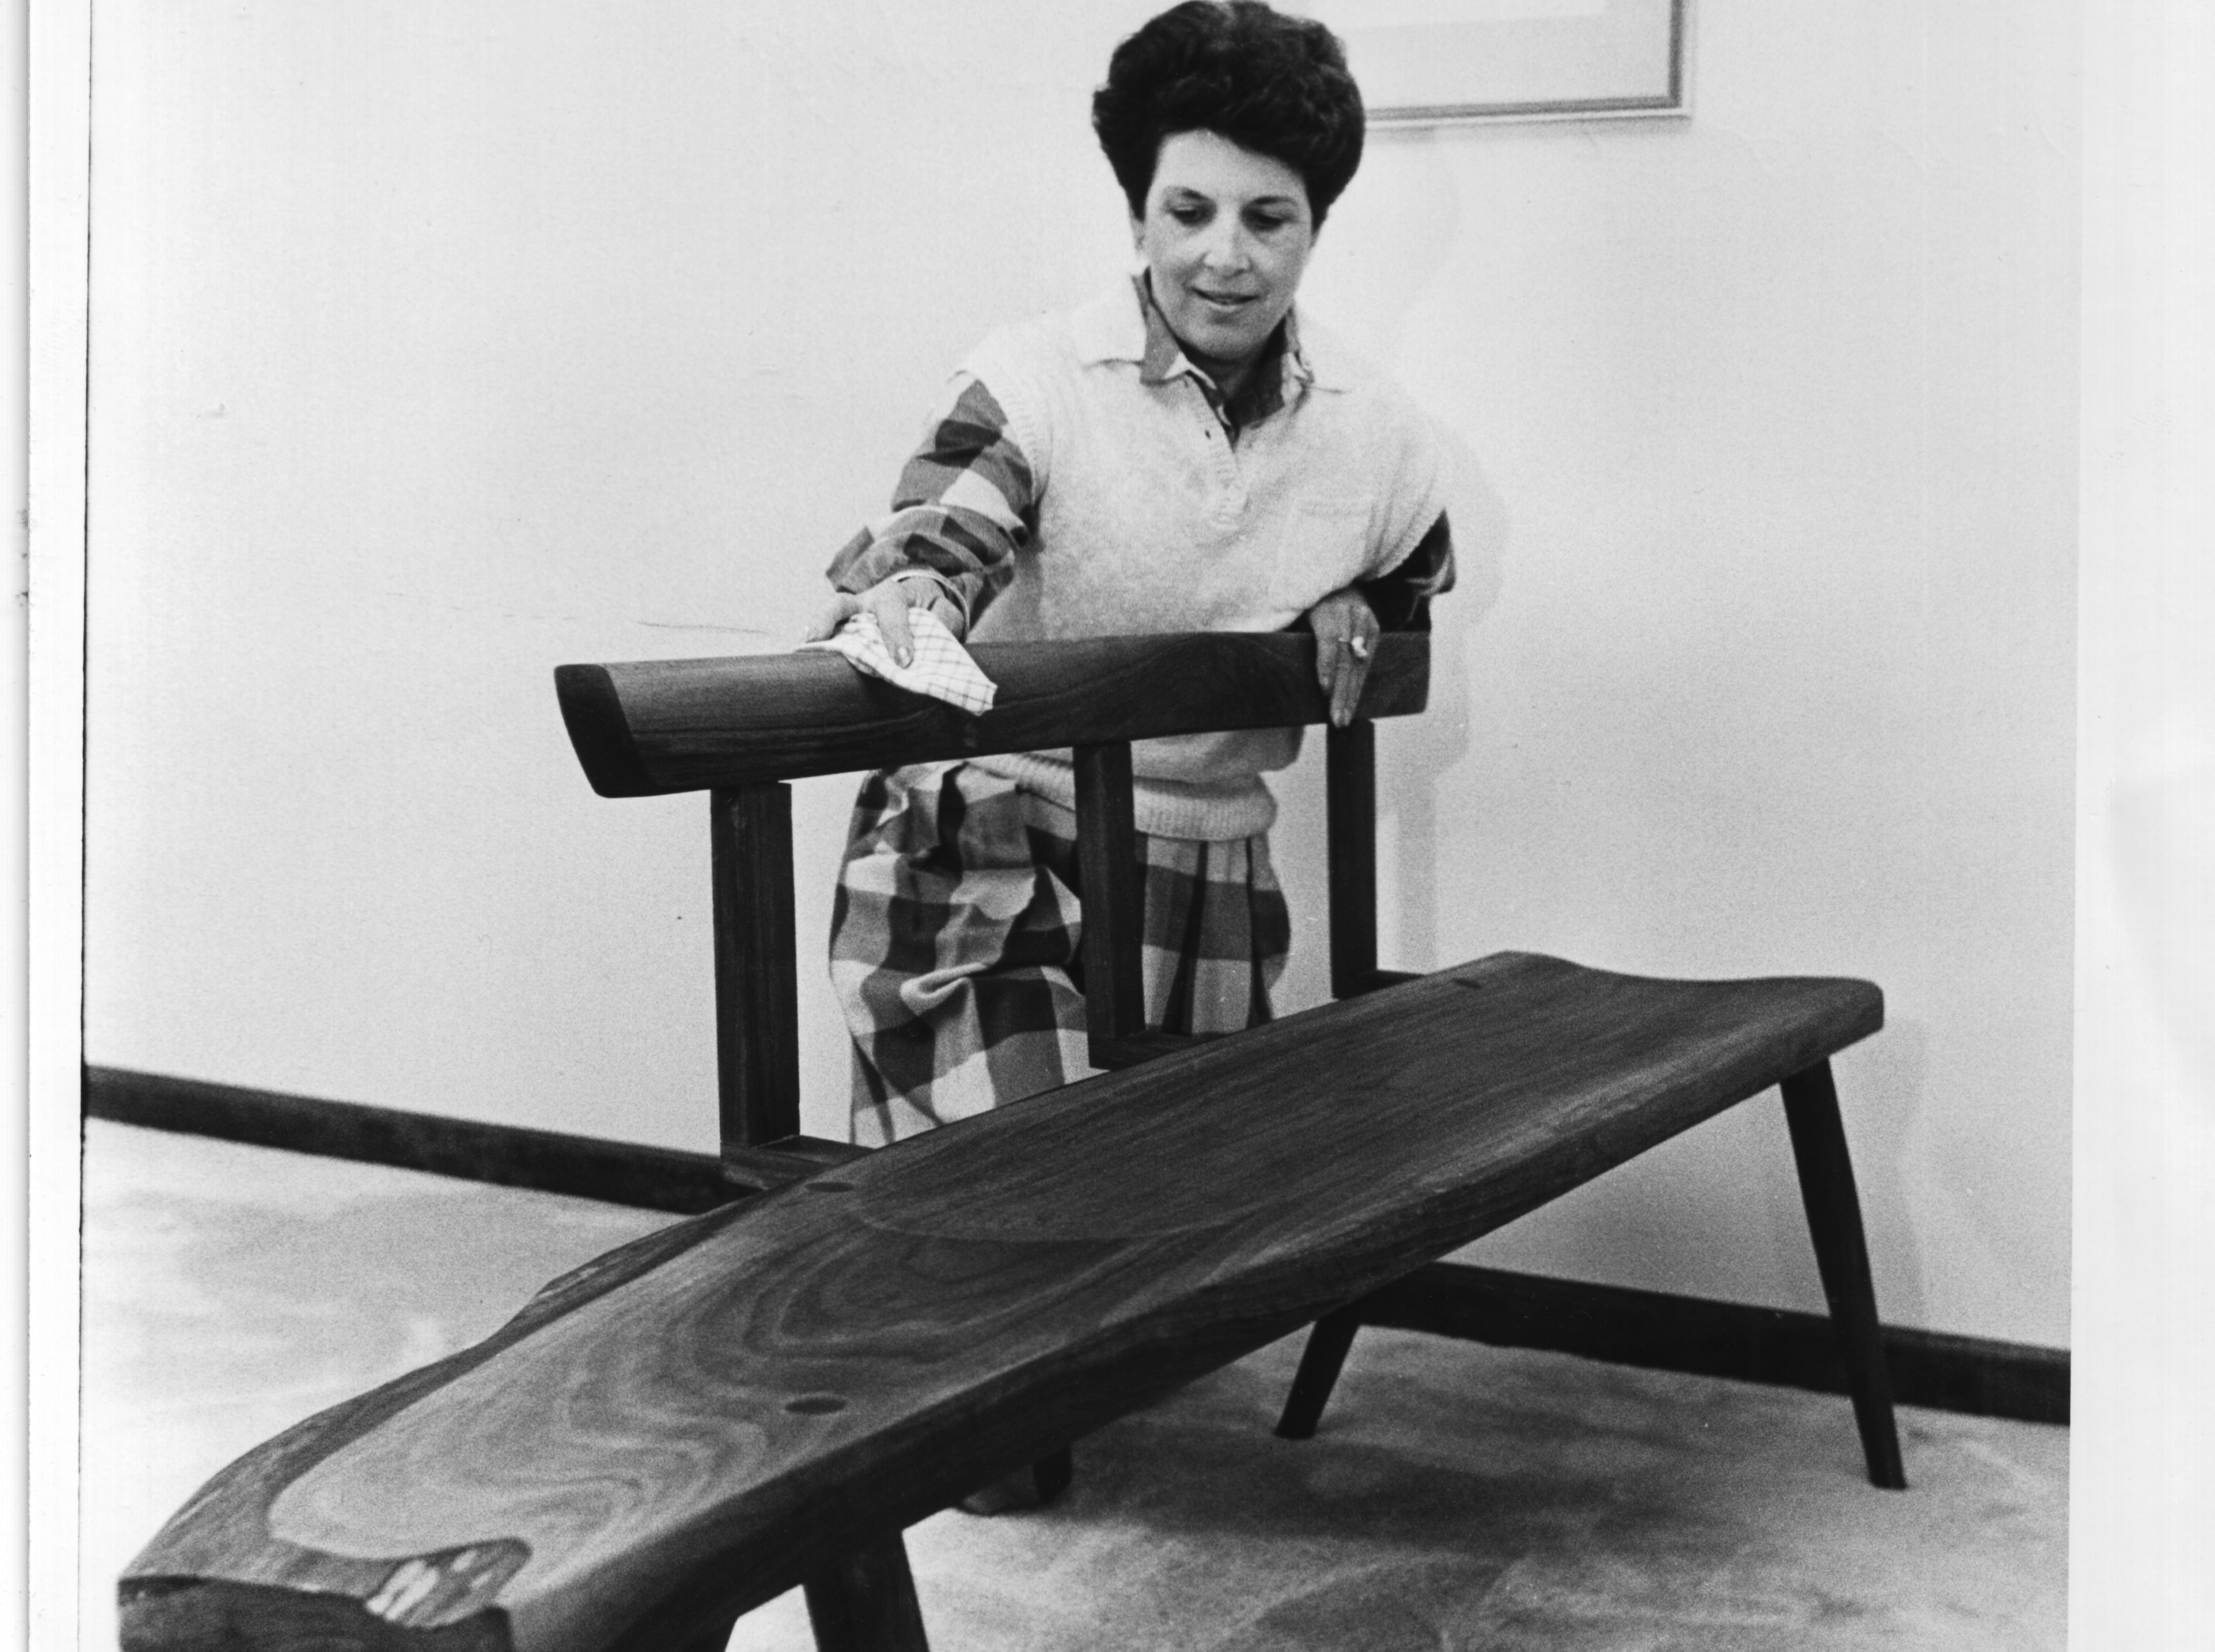 Ann Julius polishes a bench made by former President Jimmy Carter April 16, 1986 during the Dogwood Arts Festival. The bench was displayed at the Master Cabinet Makers show at East Towne Mall. Julius was co-chair of the previous year's Dogwood Arts Festival.